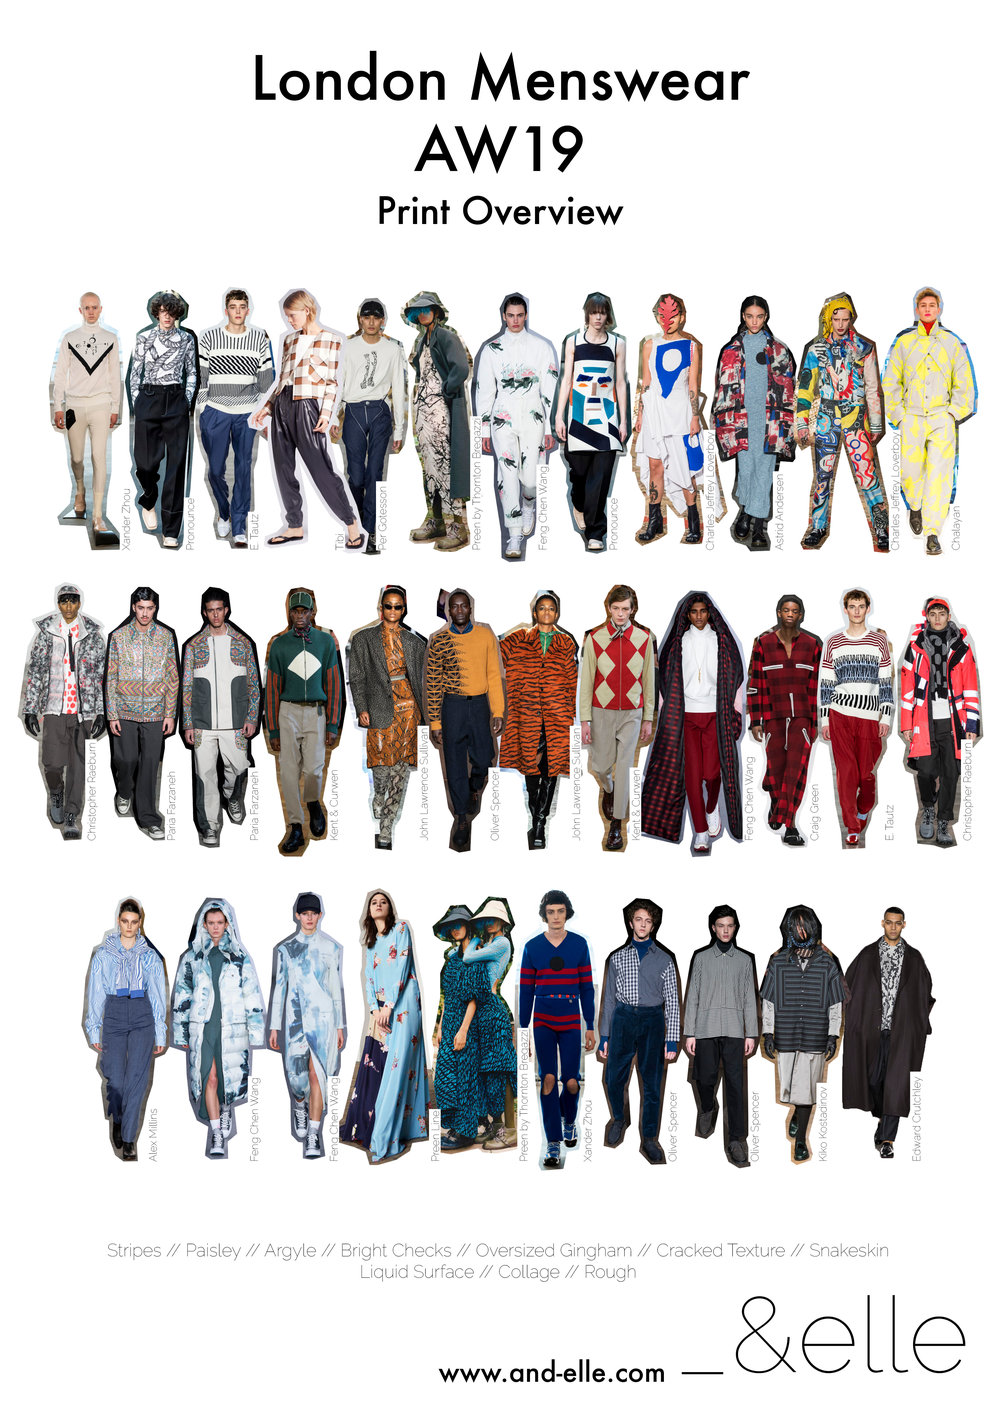 Trend Report Service London Fashion Week Print Overview